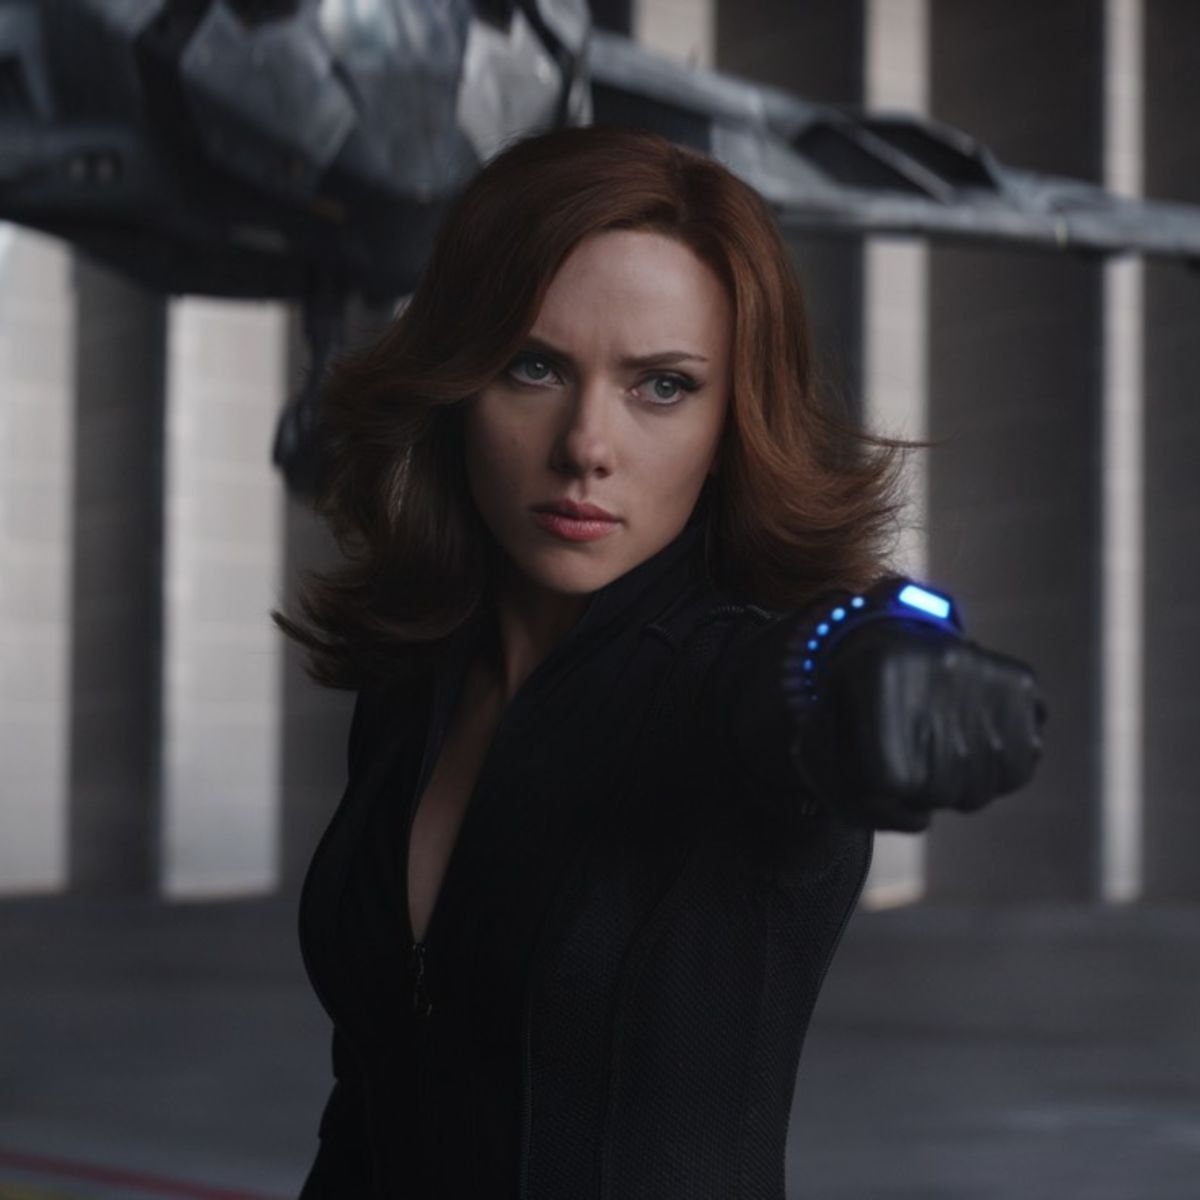 The 'Black Widow' Standalone Movie Has Reportedly Found Its Director